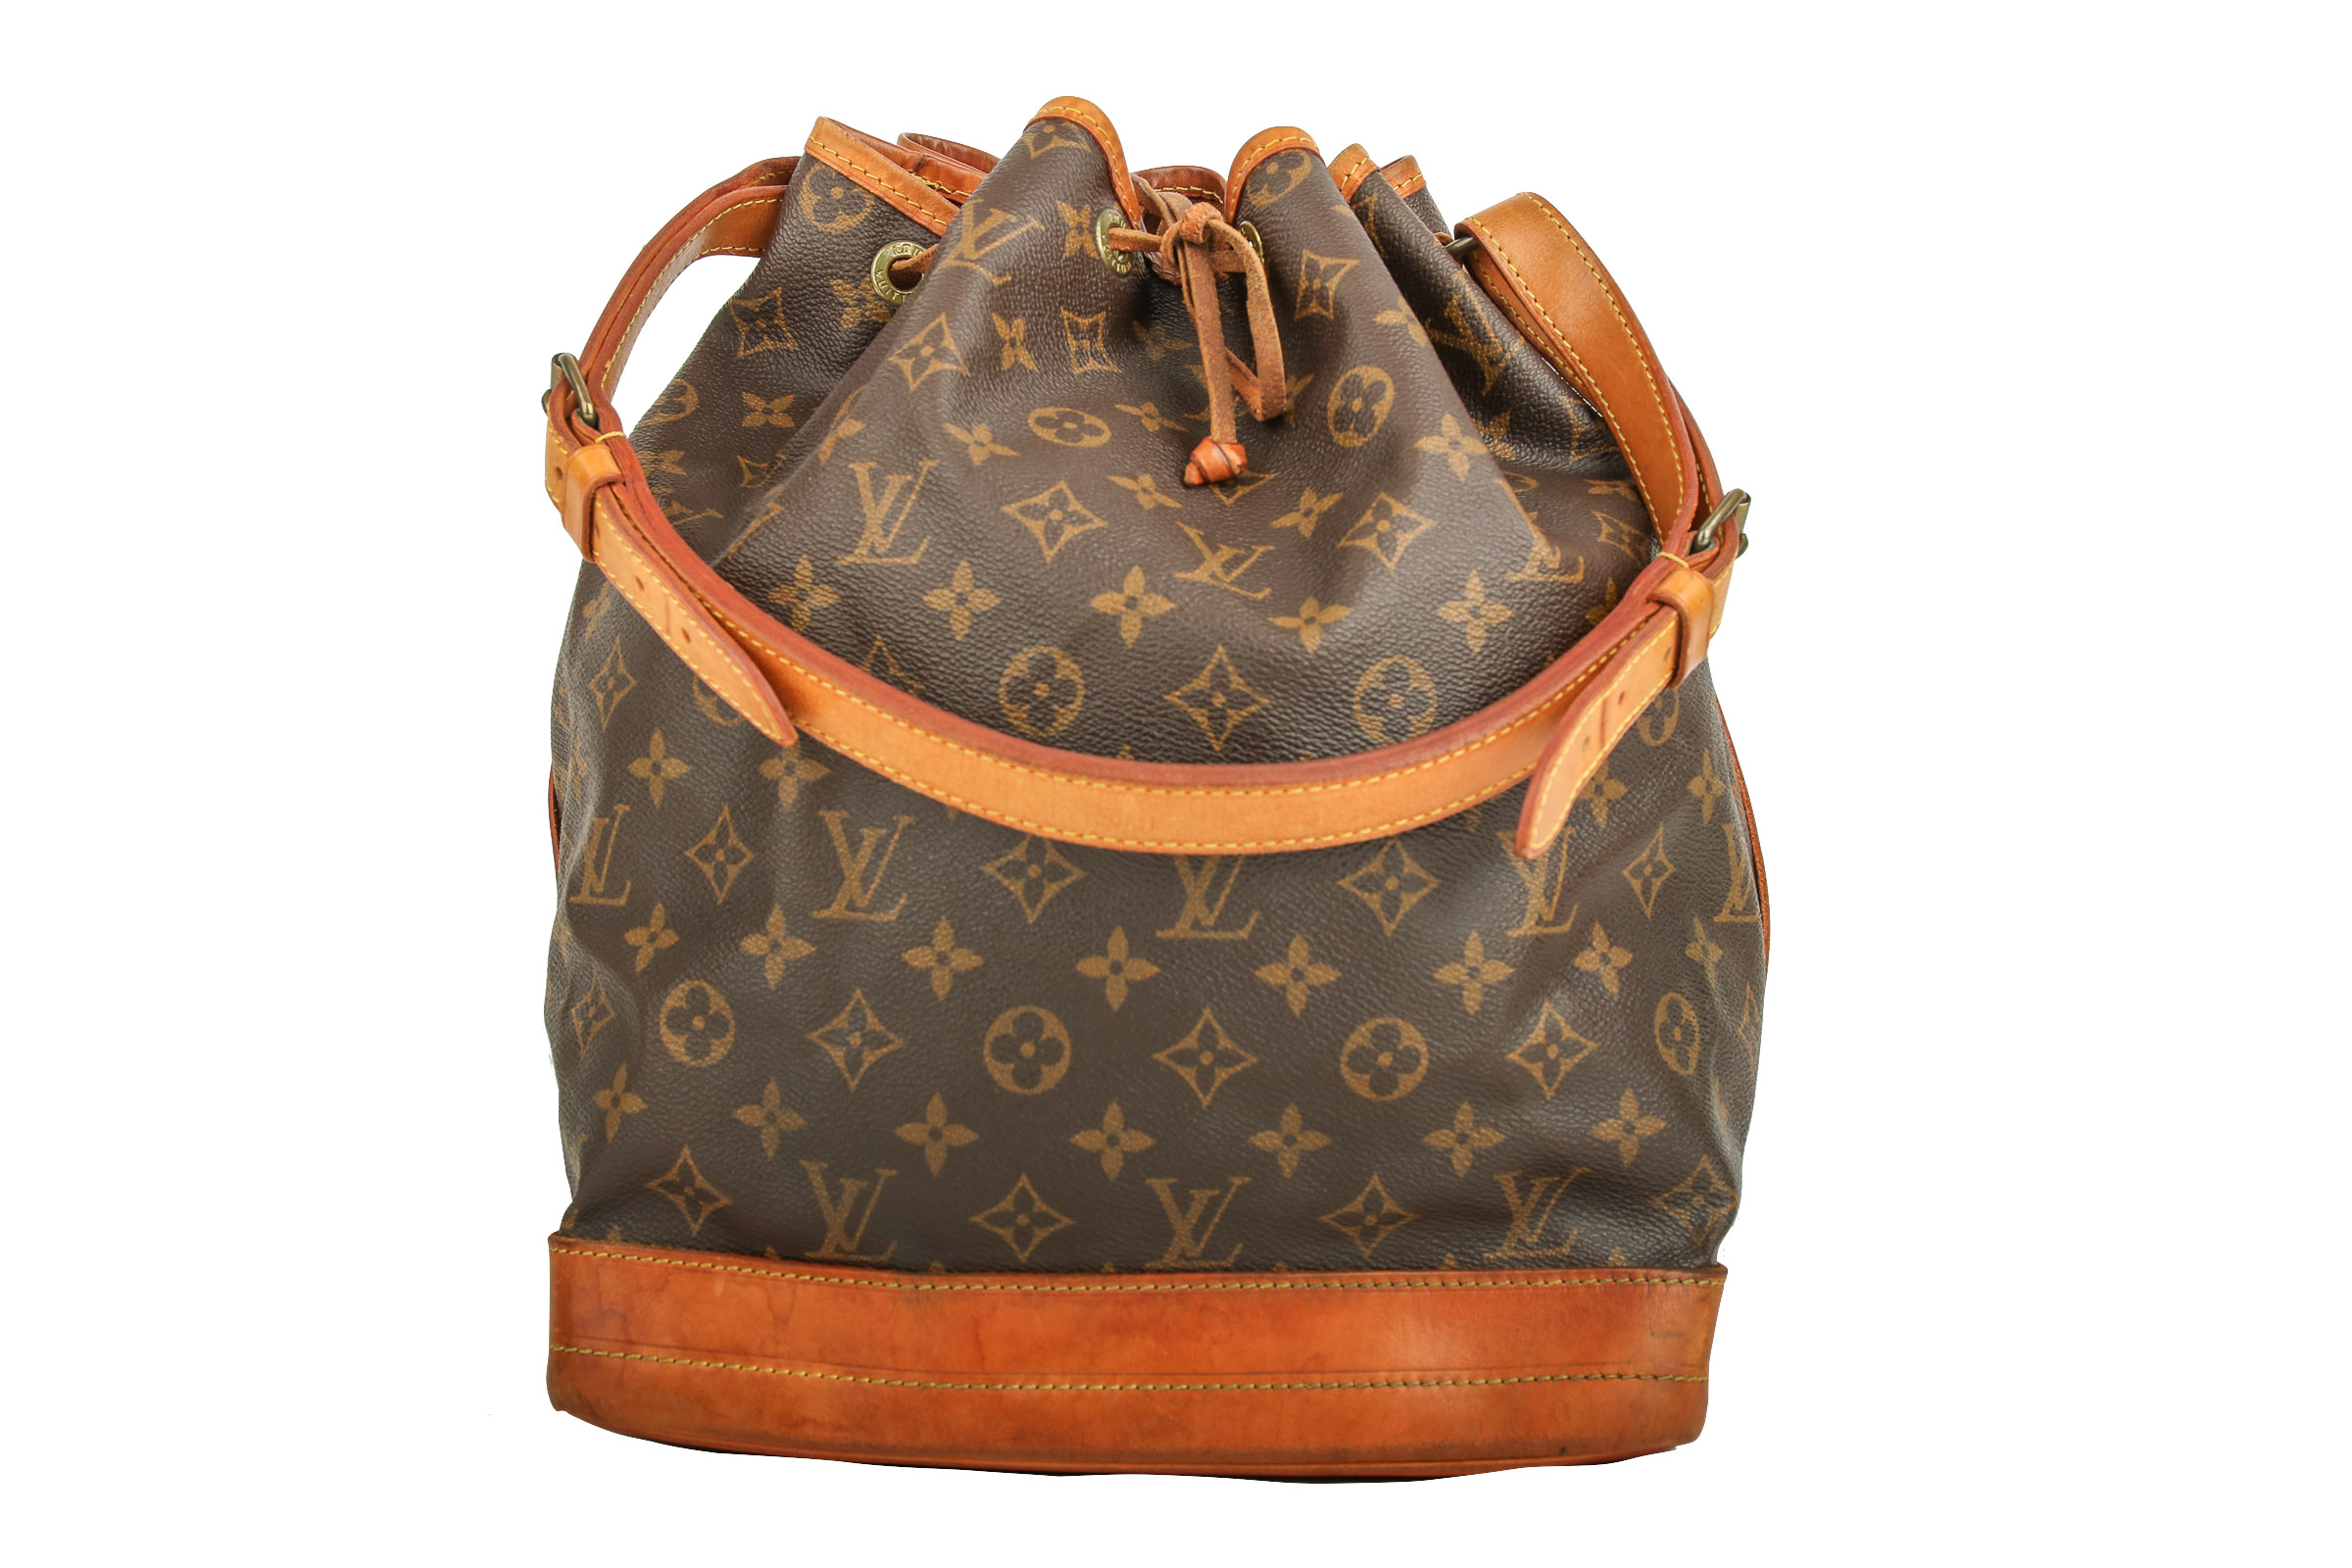 900a34c74657c Louis Vuitton Sac Noé Grand Monogram Canvas